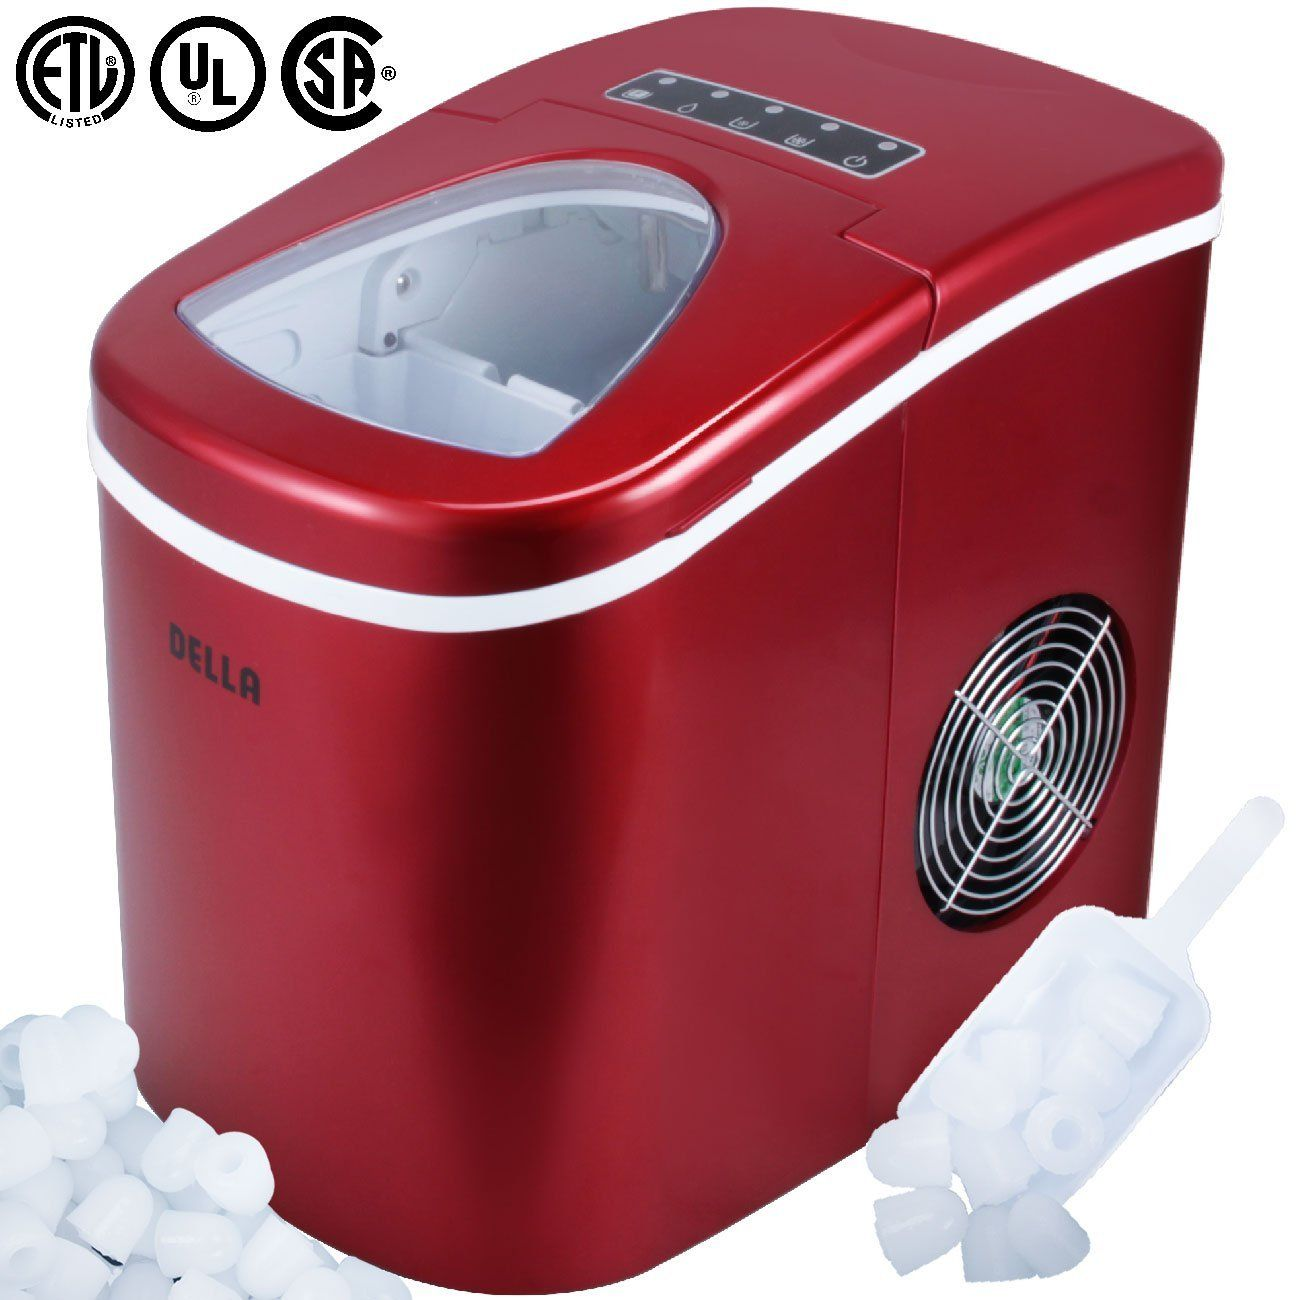 Della Portable Ice Maker W Easy Touch Yield Up To 26 Pounds Of